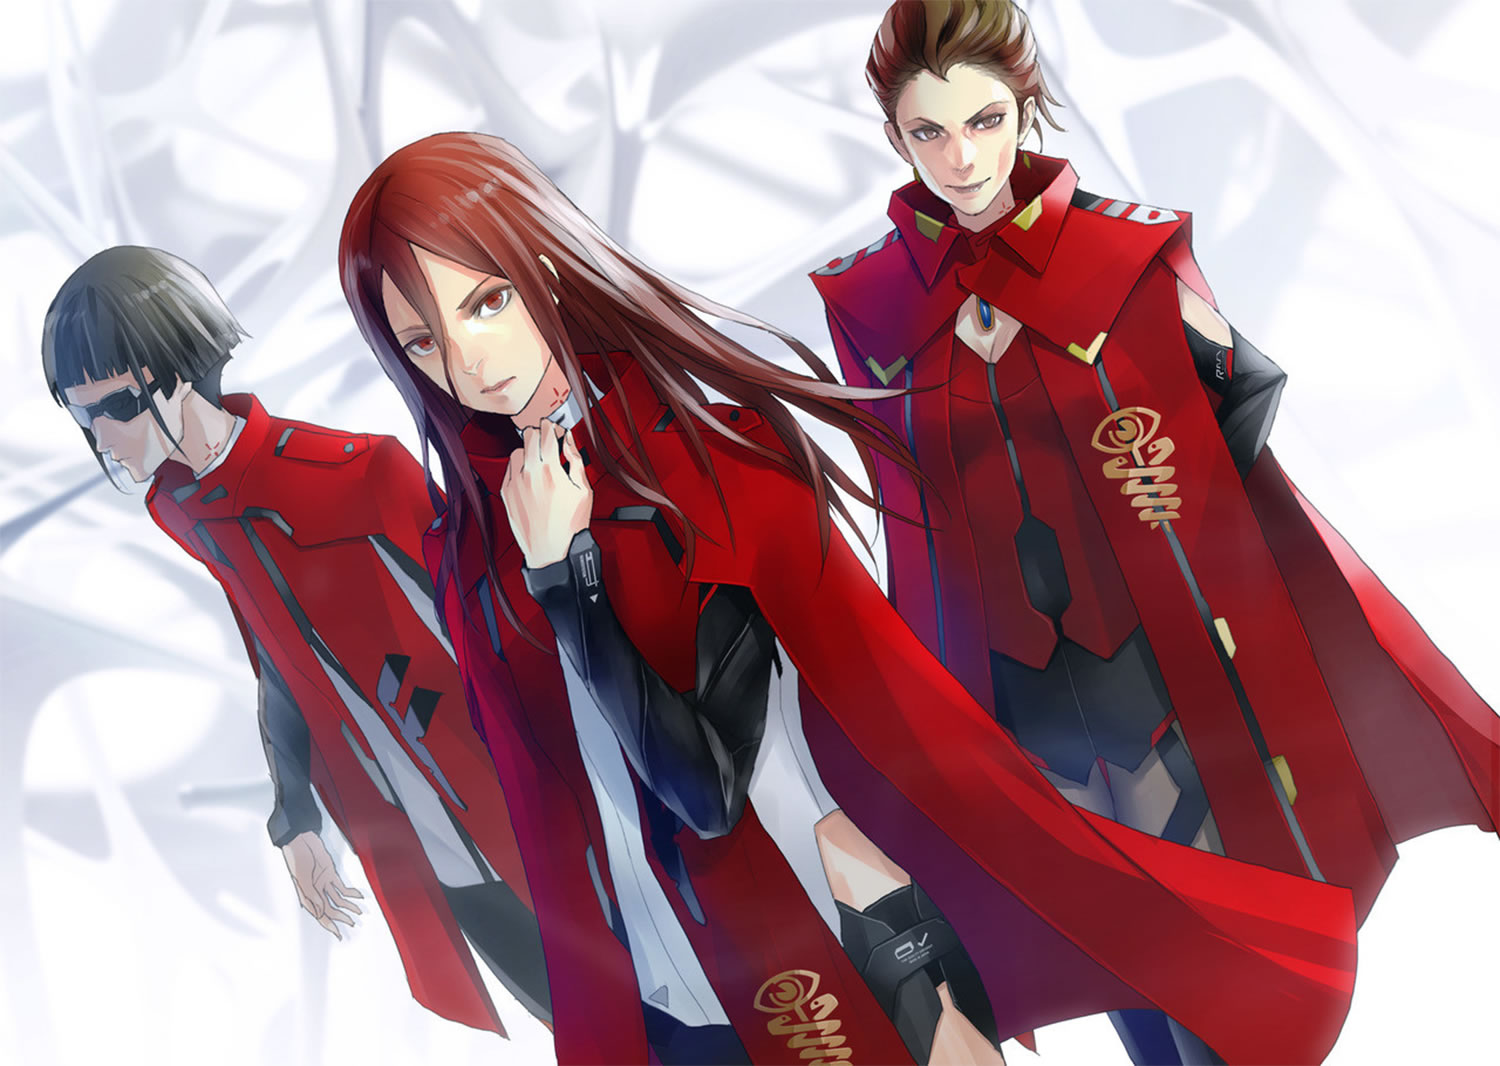 futuristic women dressed in red, Harmony anime